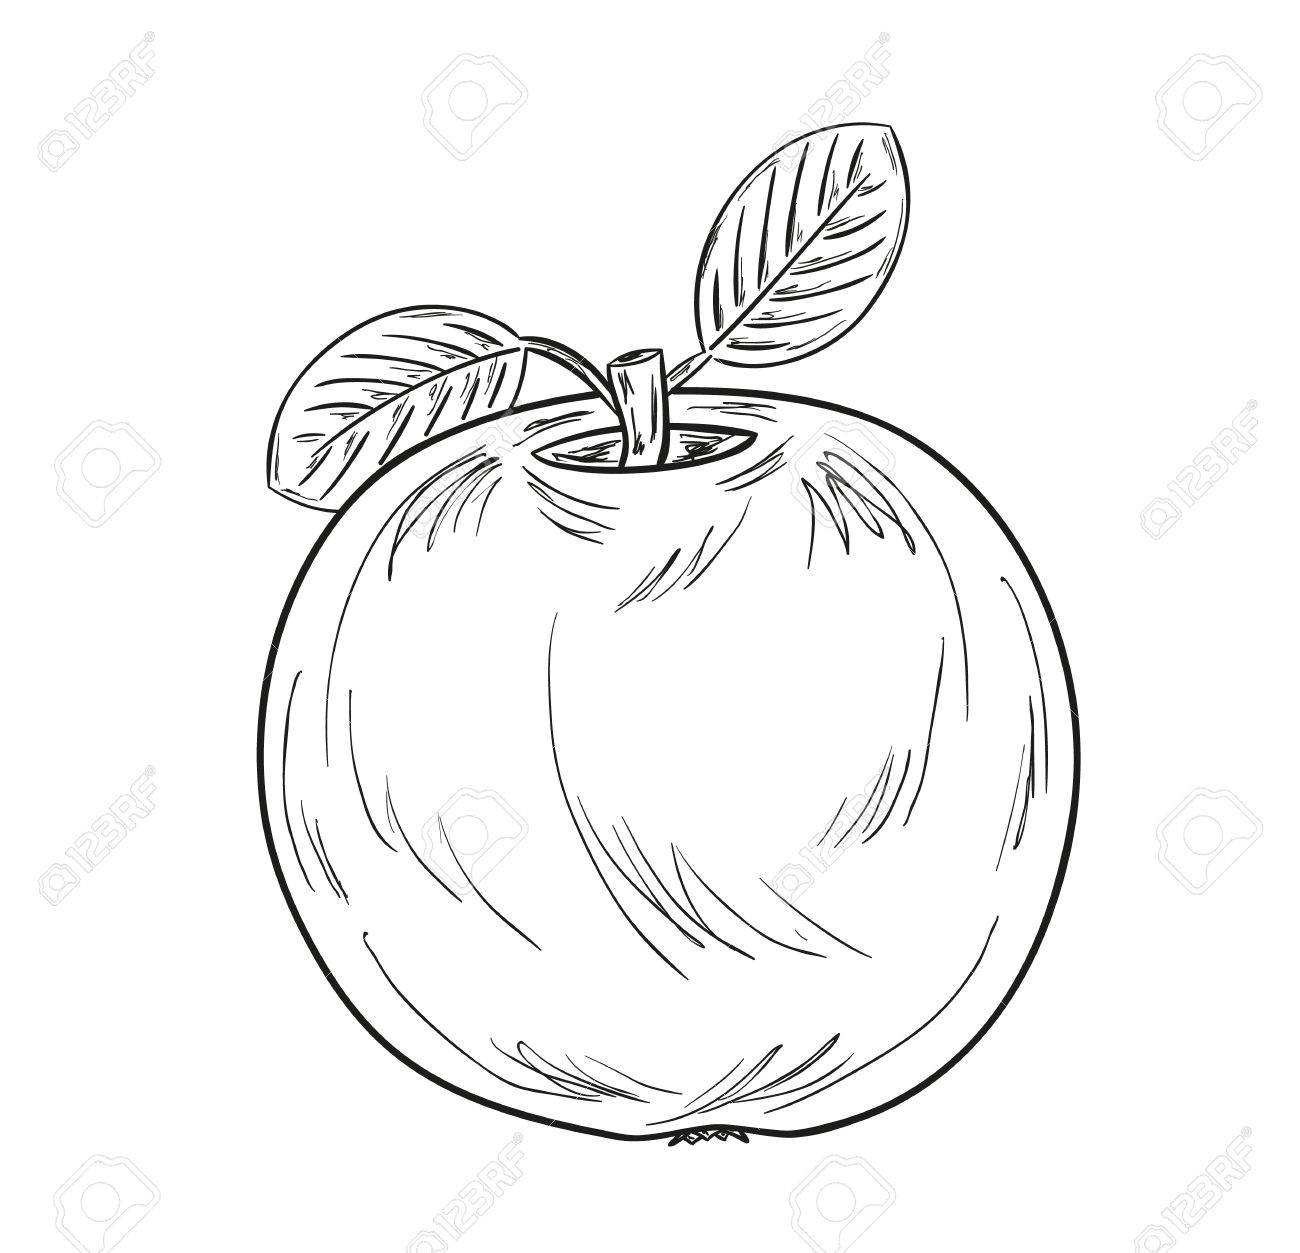 1300x1253 Sketch Of The Apple With Leaves On White Background Royalty Free